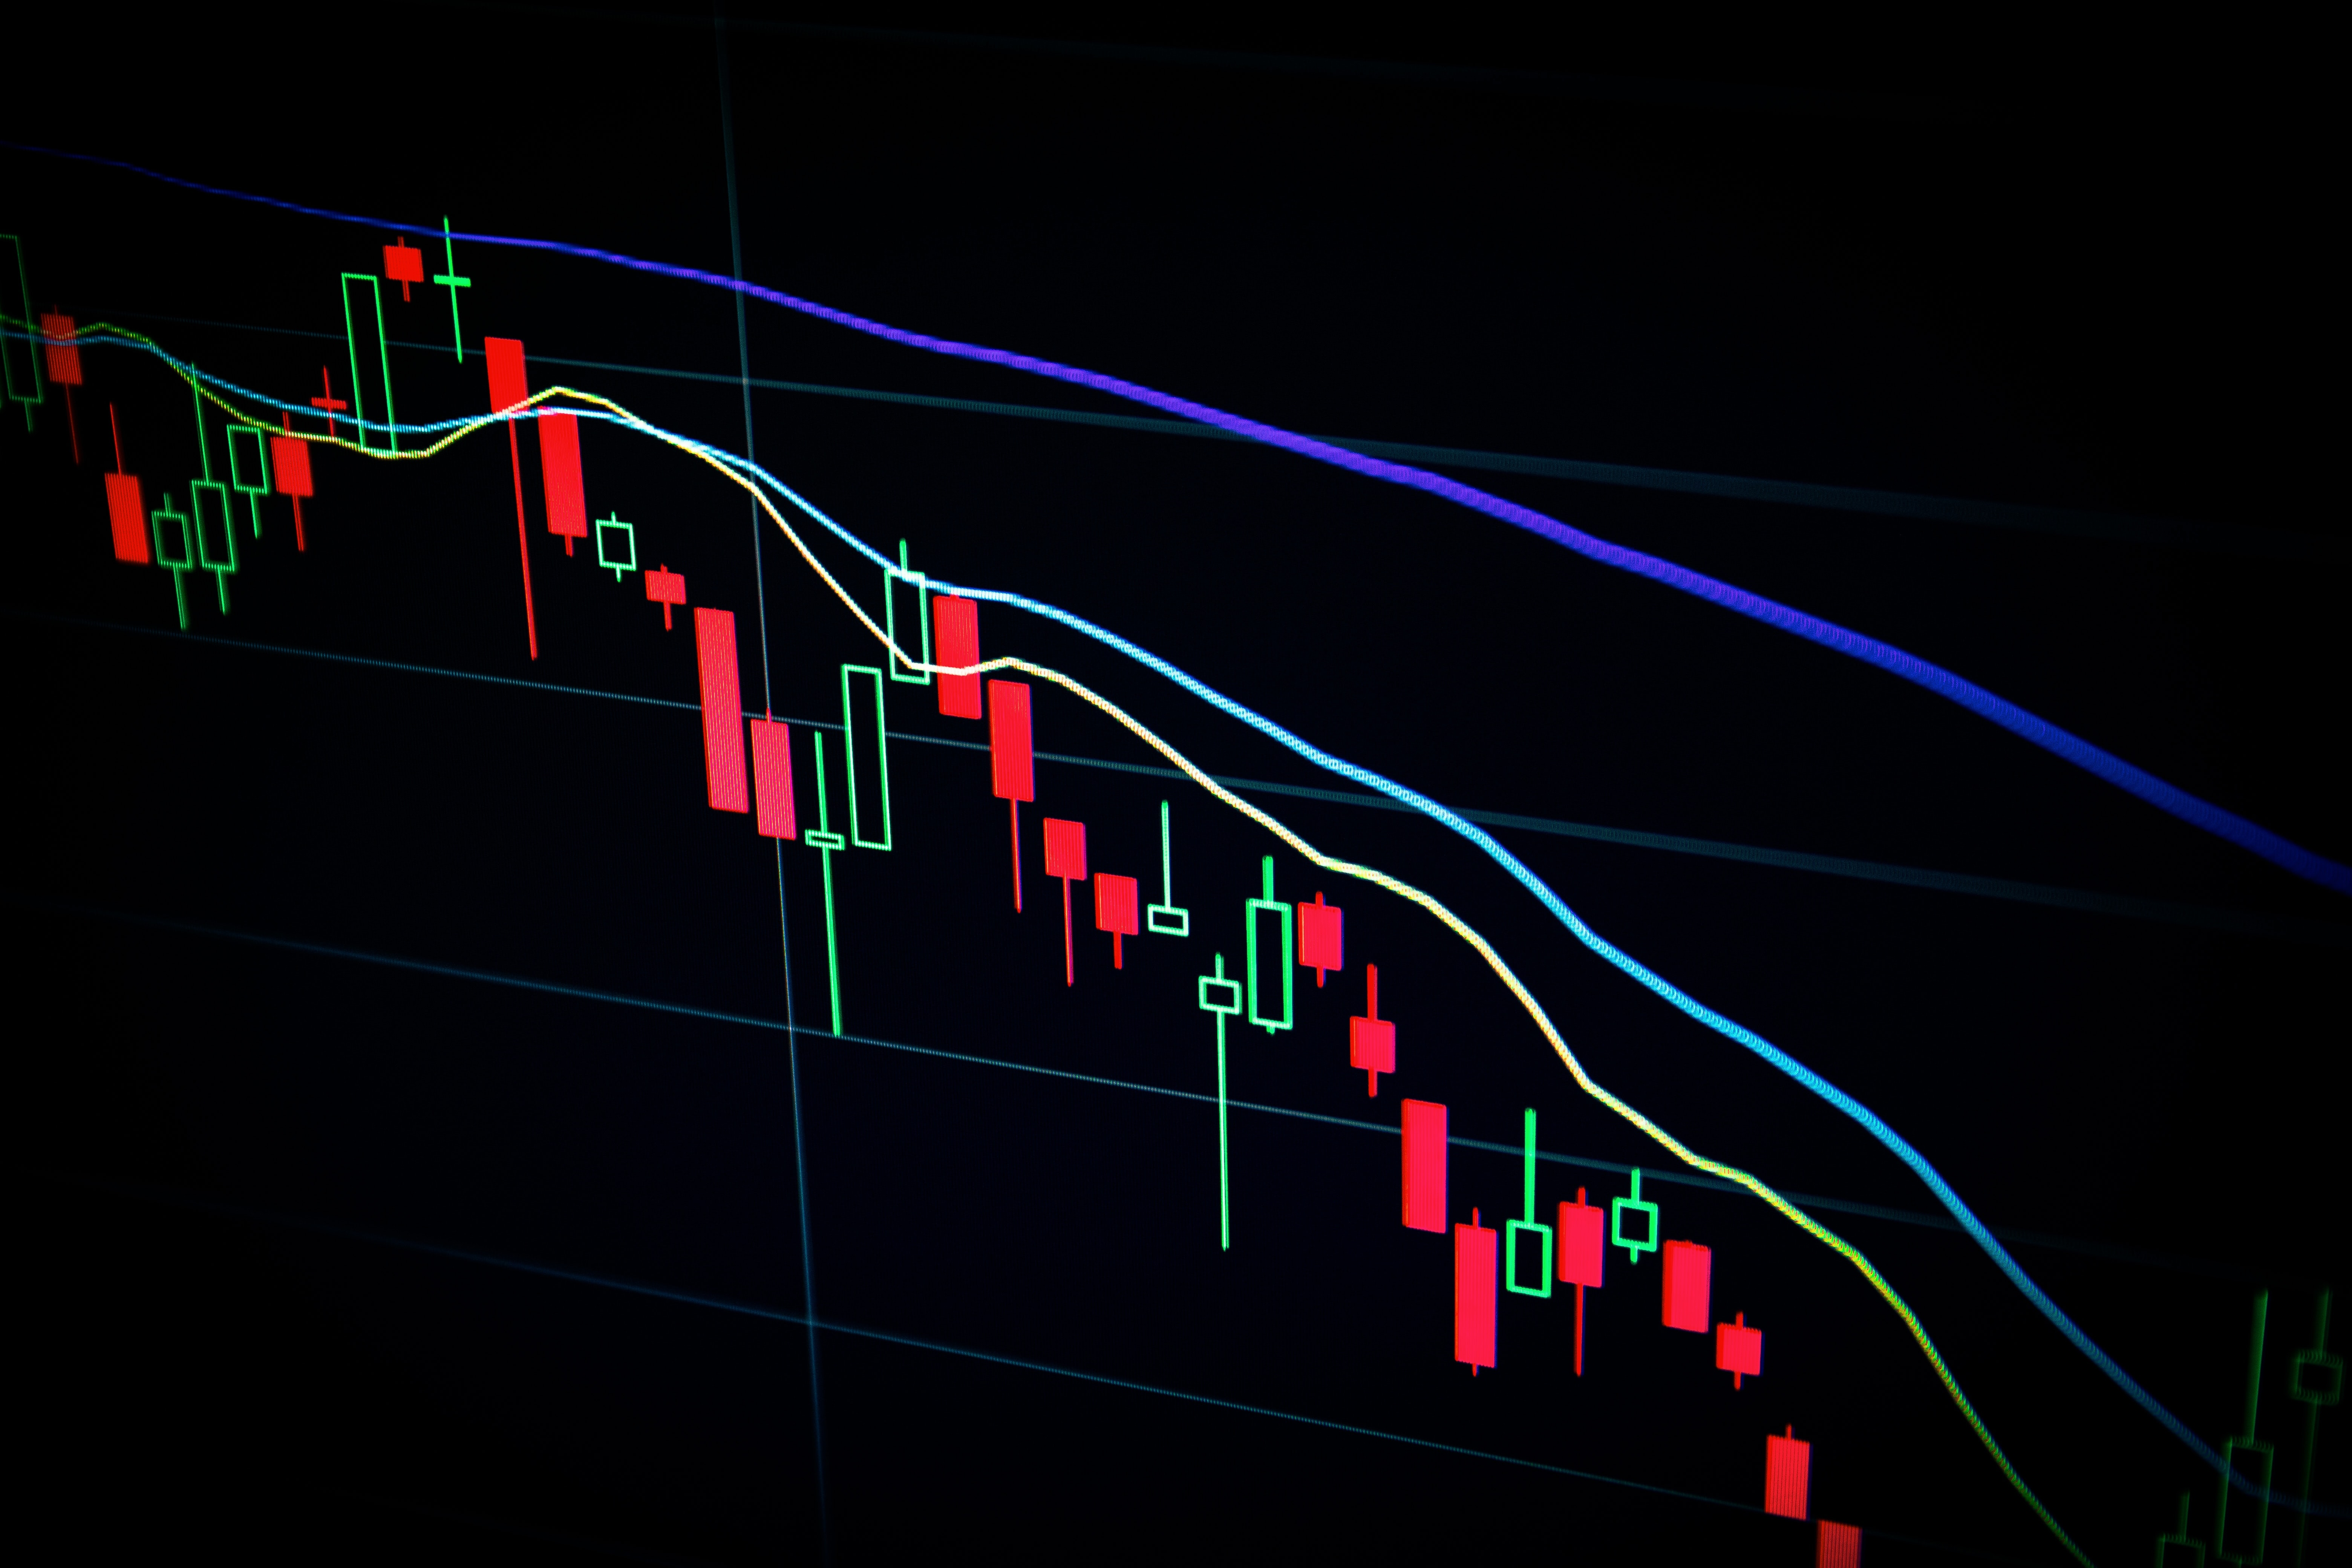 Bitcoin Suffers 10% Pull Back On El Salvador's Debut, Funding Rates Dip